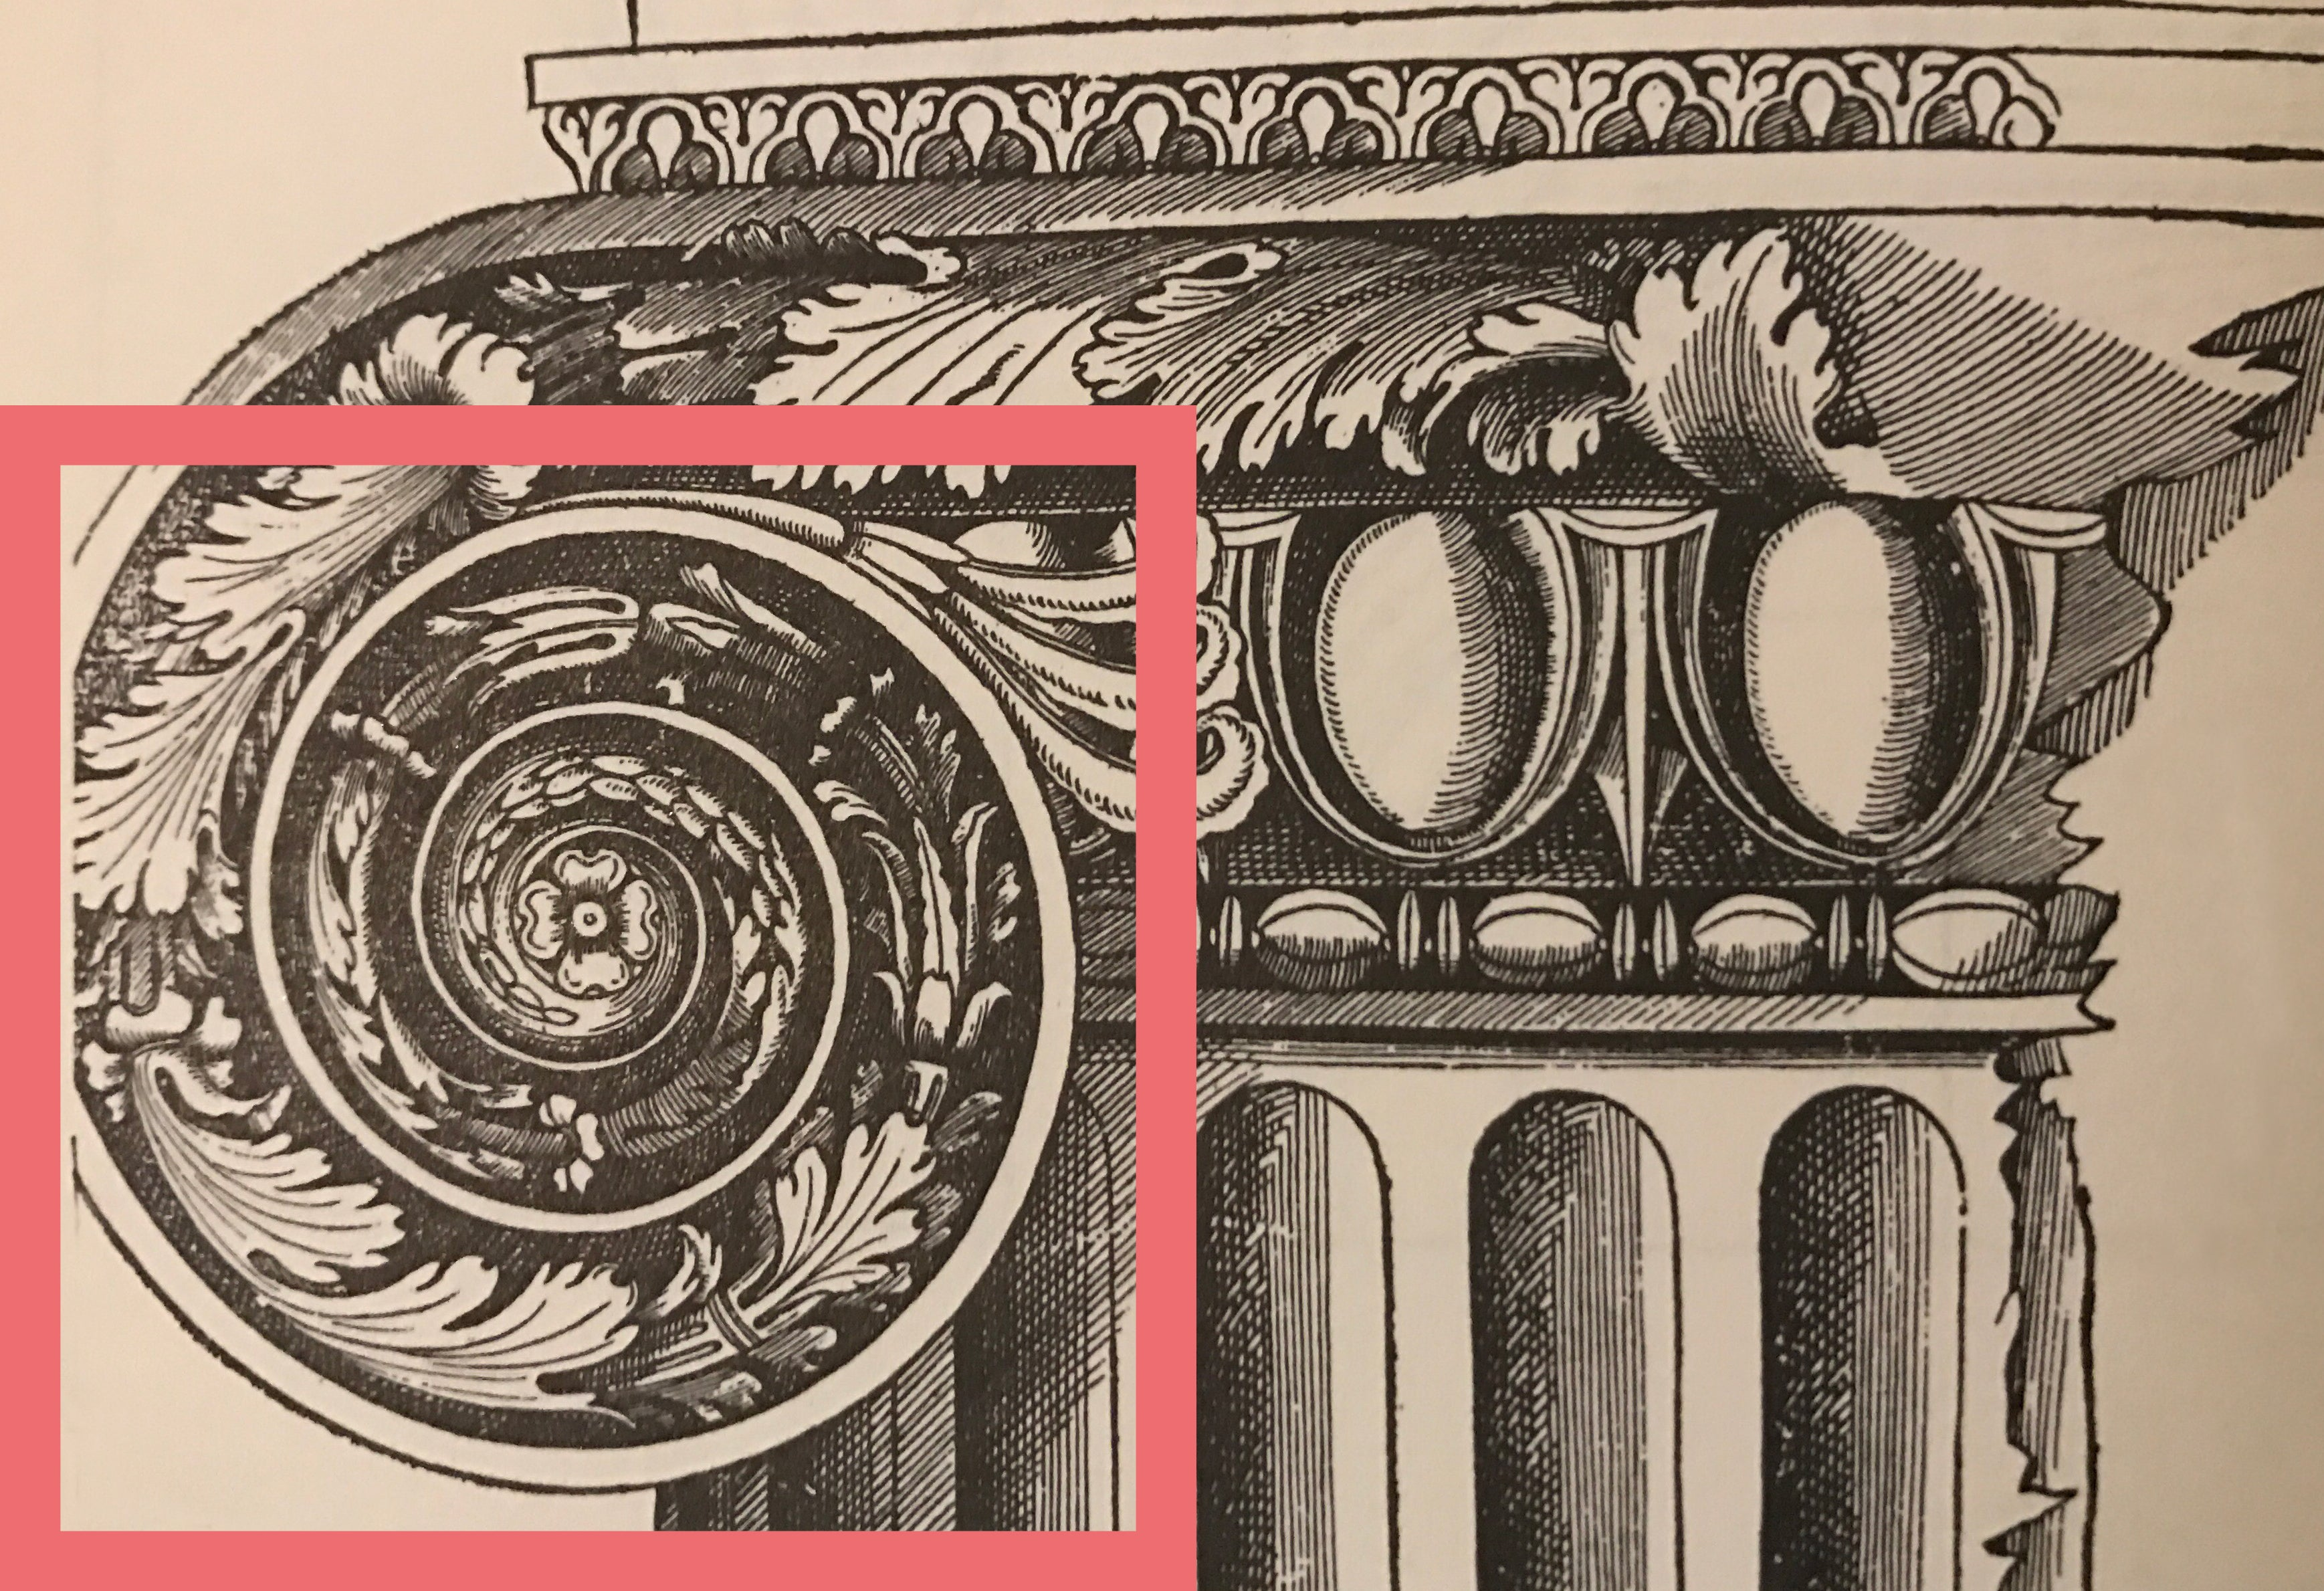 eye of a volute or scroll illustrated sketch for brockwell incorporated's glossary of classical architectural terms